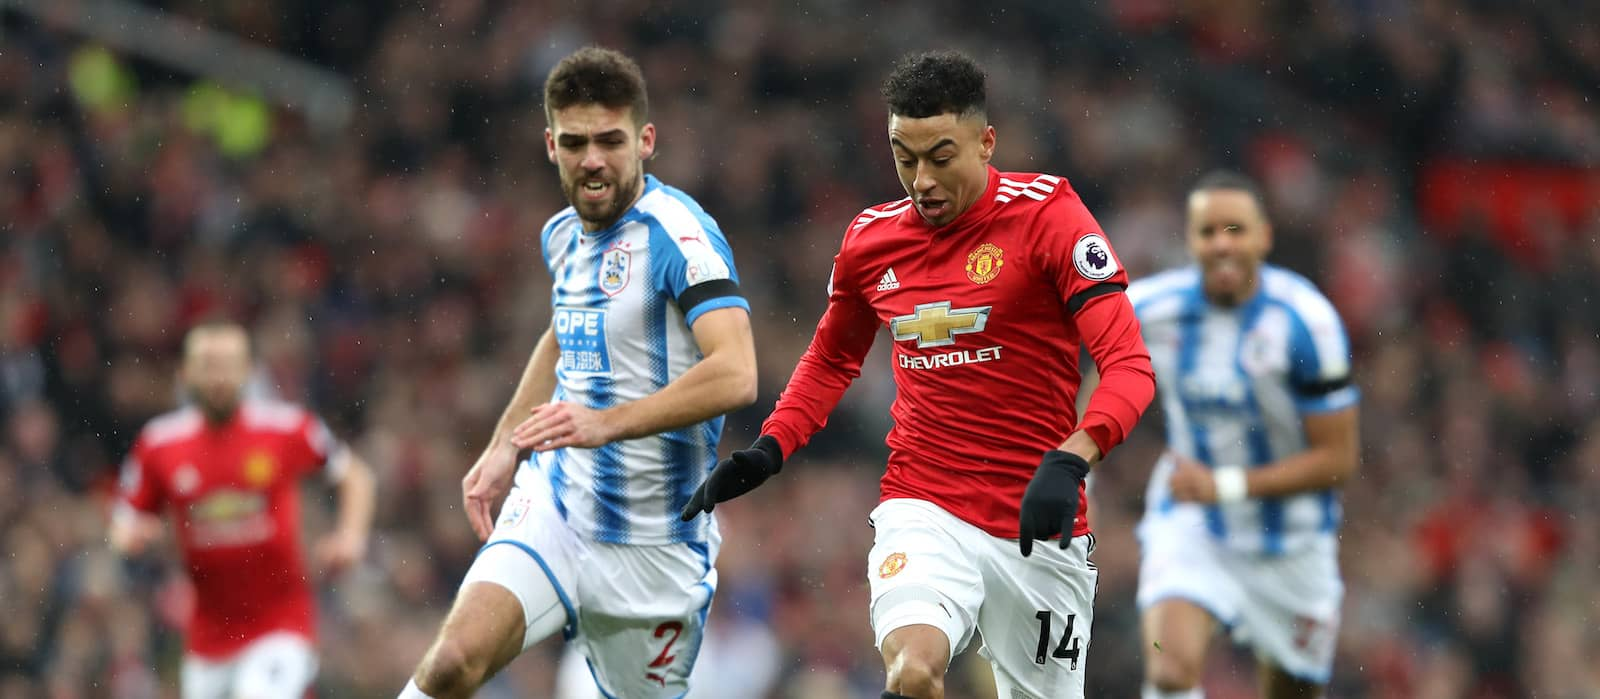 Martin Keown blames Manchester United's Jesse Lingard for Paul Pogba's 'suffering'